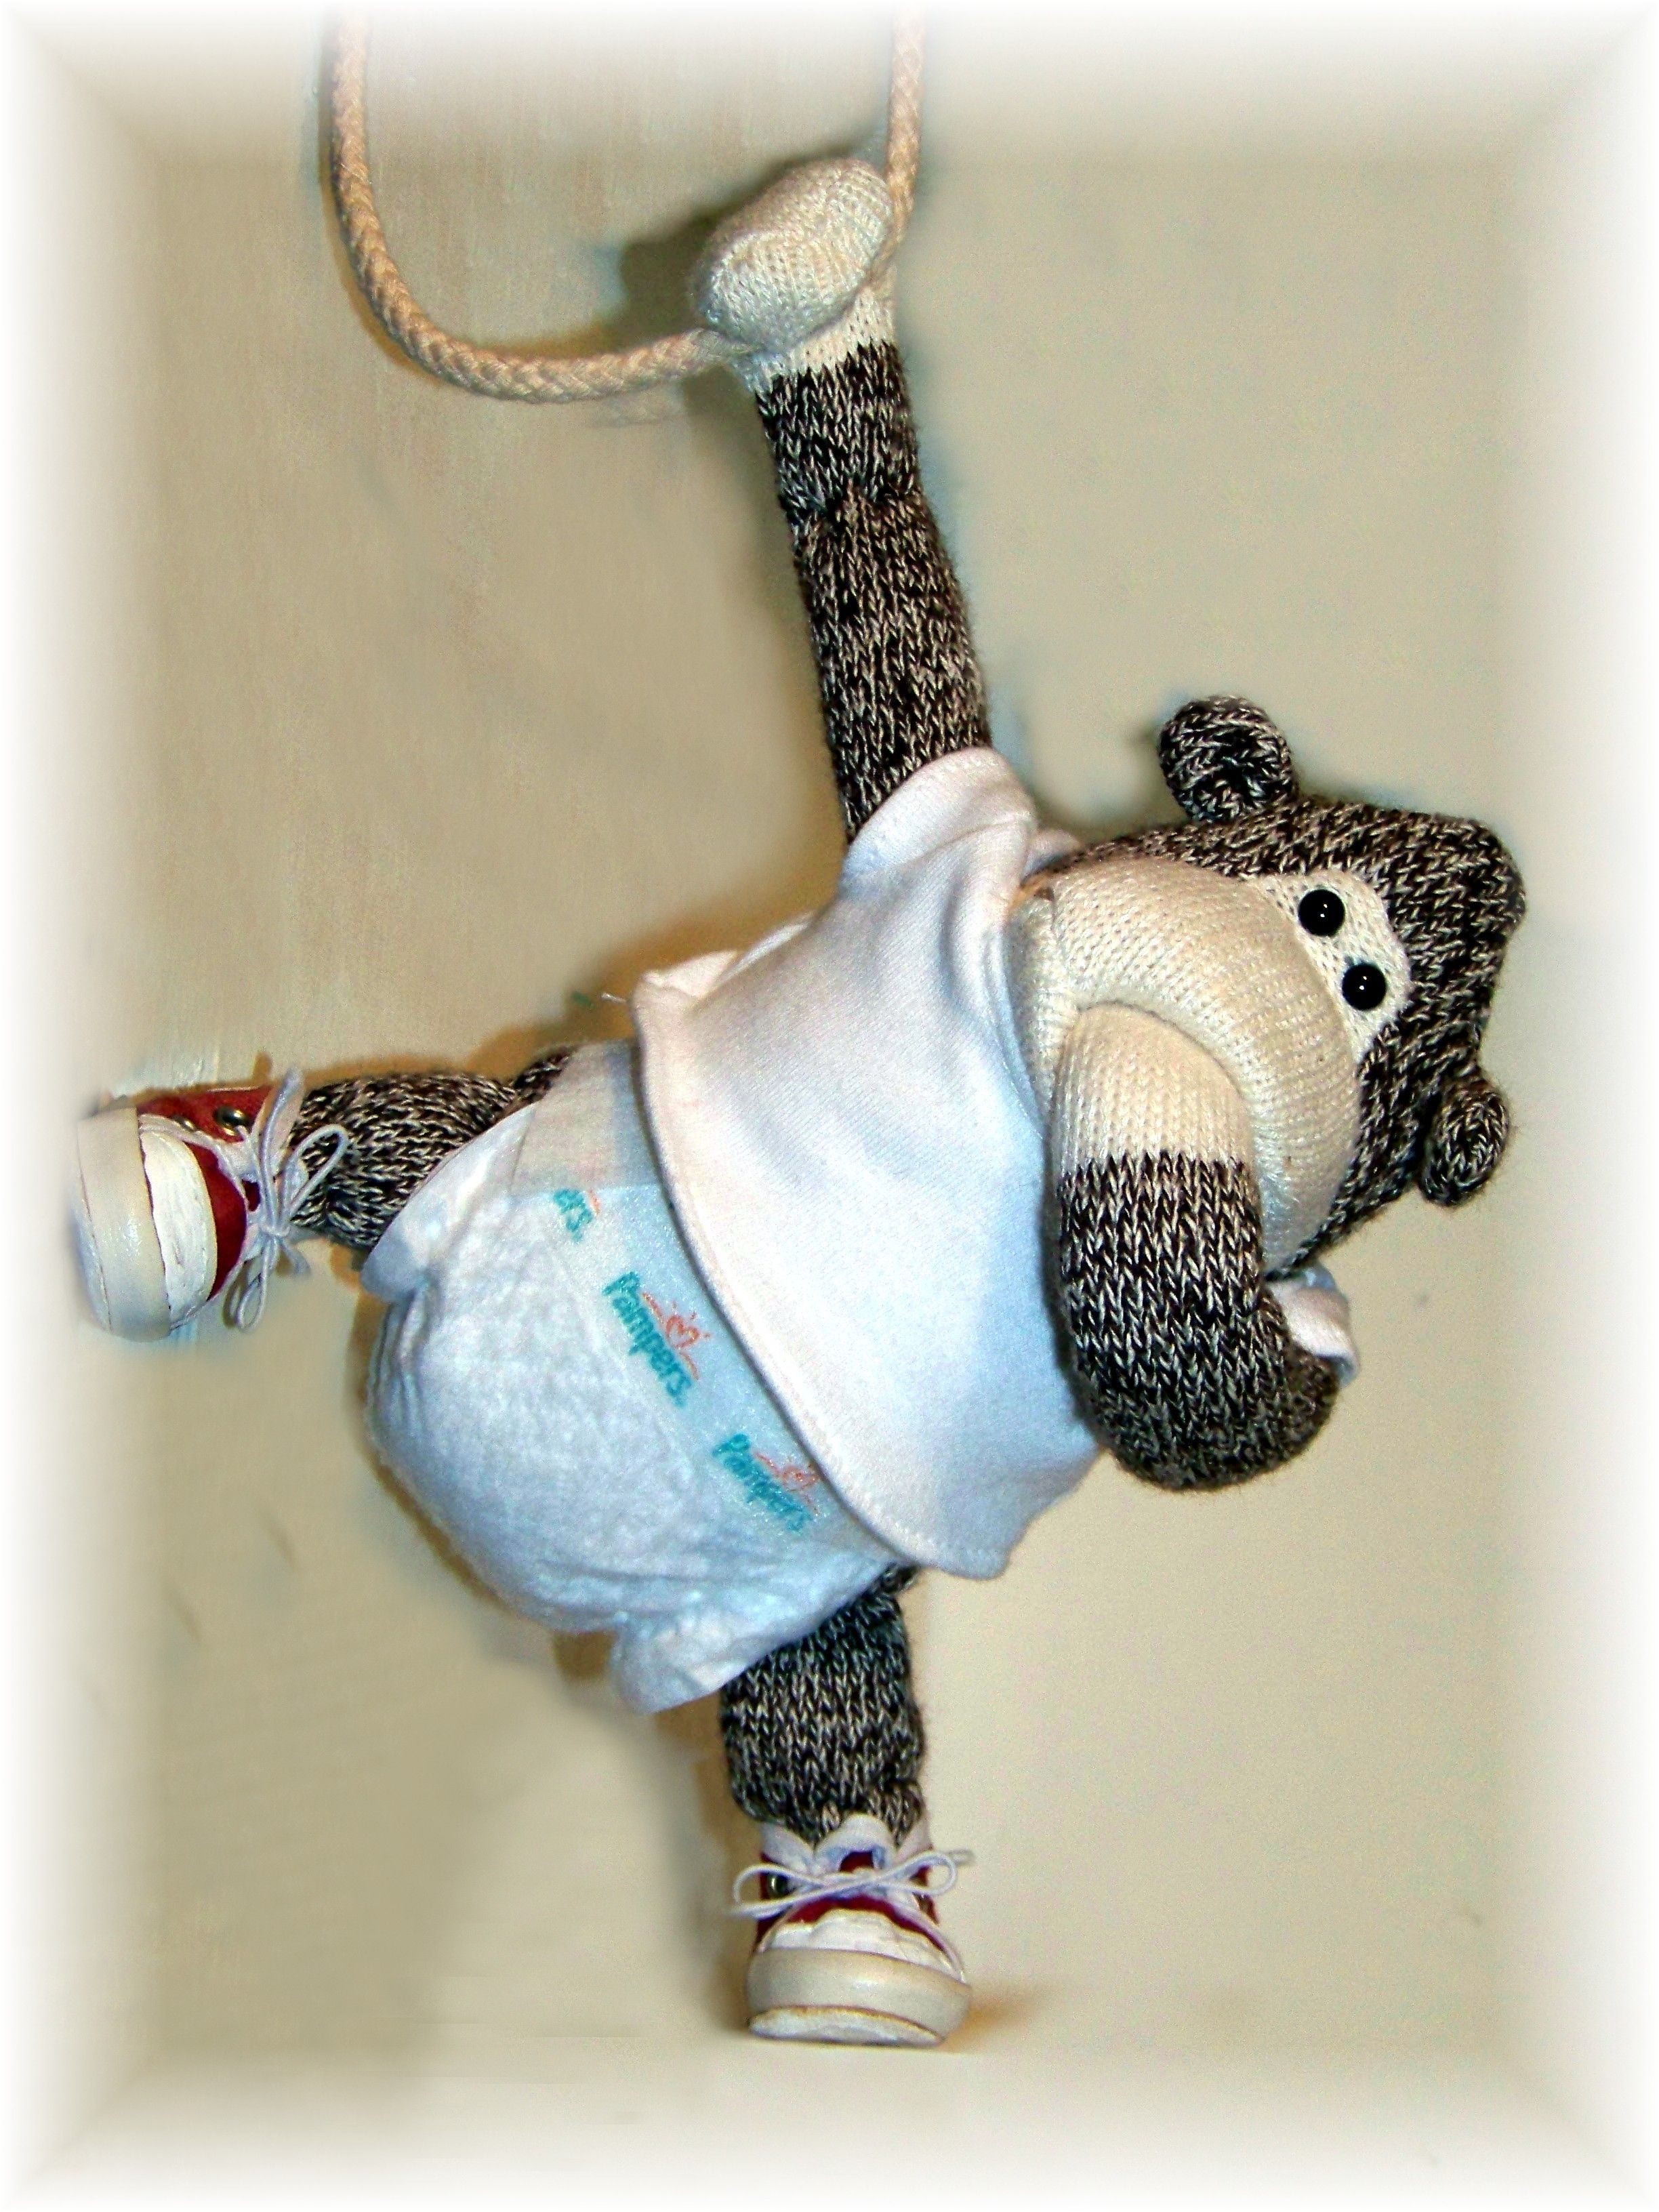 Baby Sock Monkey Gorilla my sister gave me. I put shoes and diaper on for fun. One of my favorite gifts.